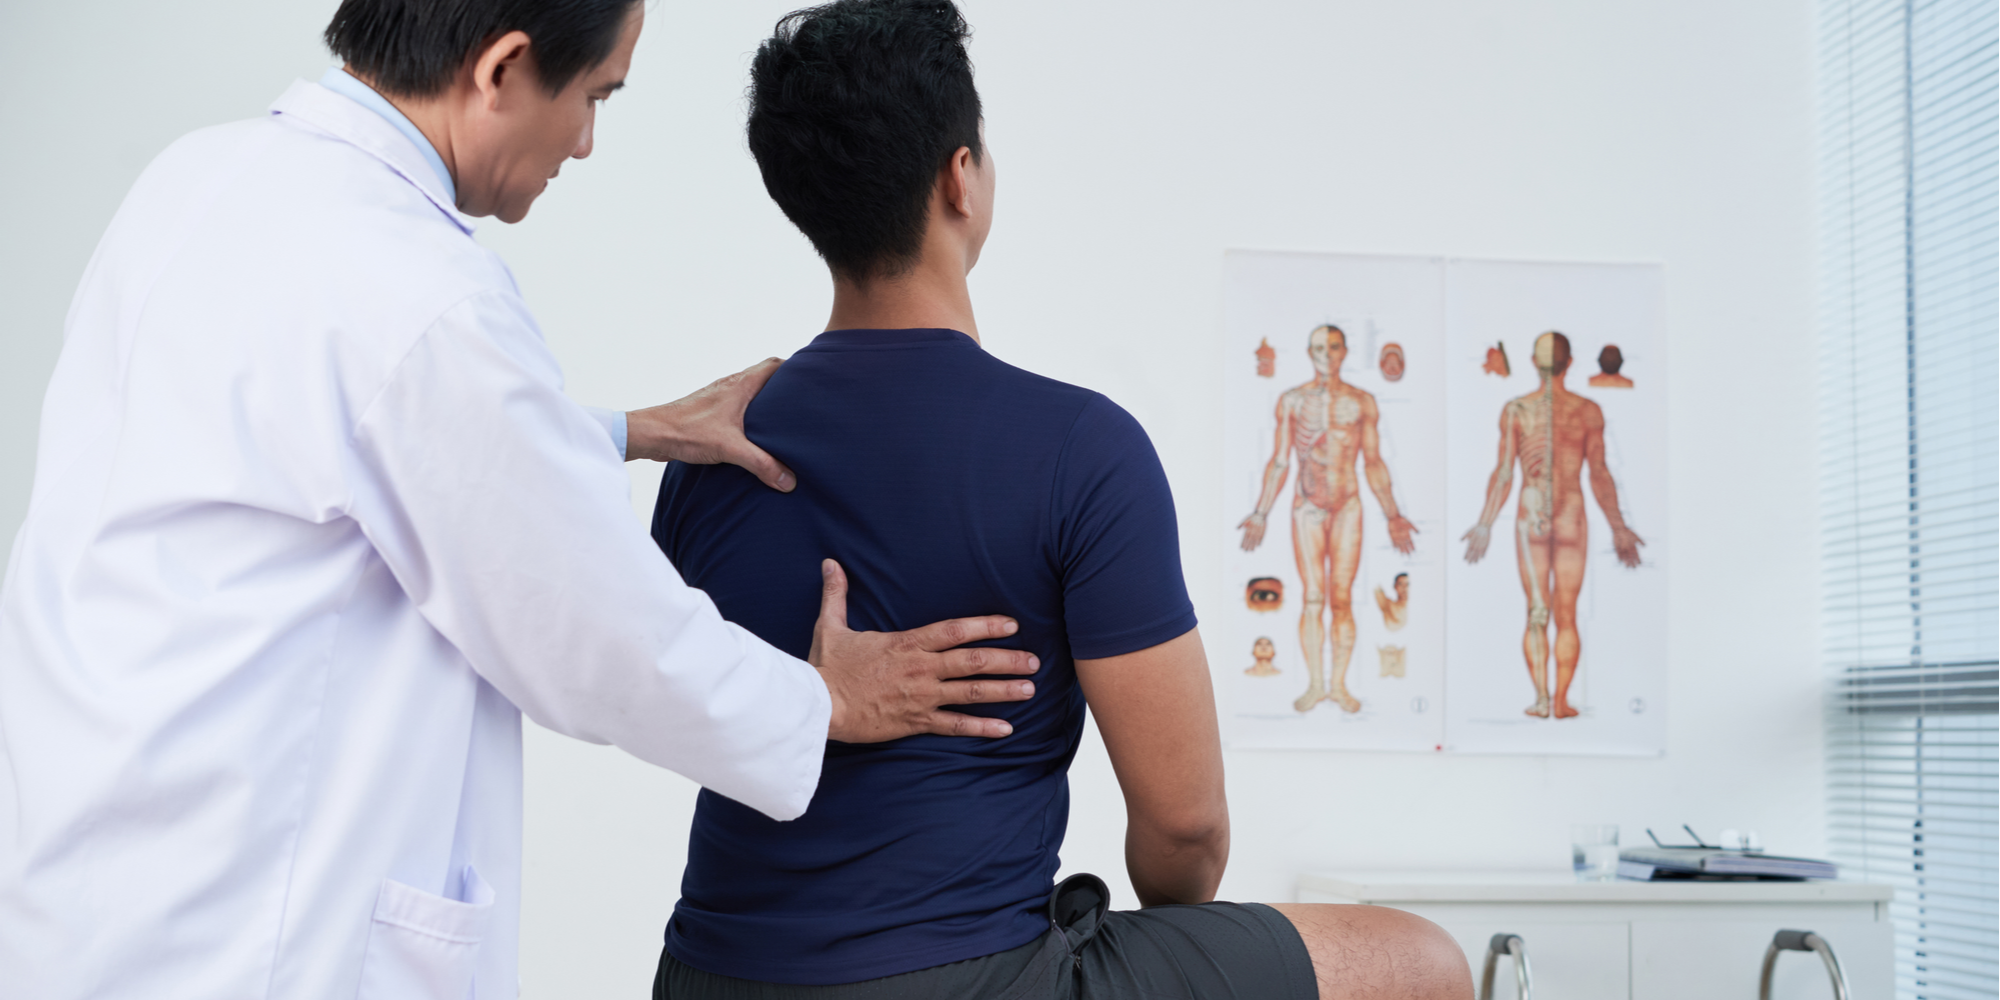 Why Should You See a Chiropractor After a Car Accident?